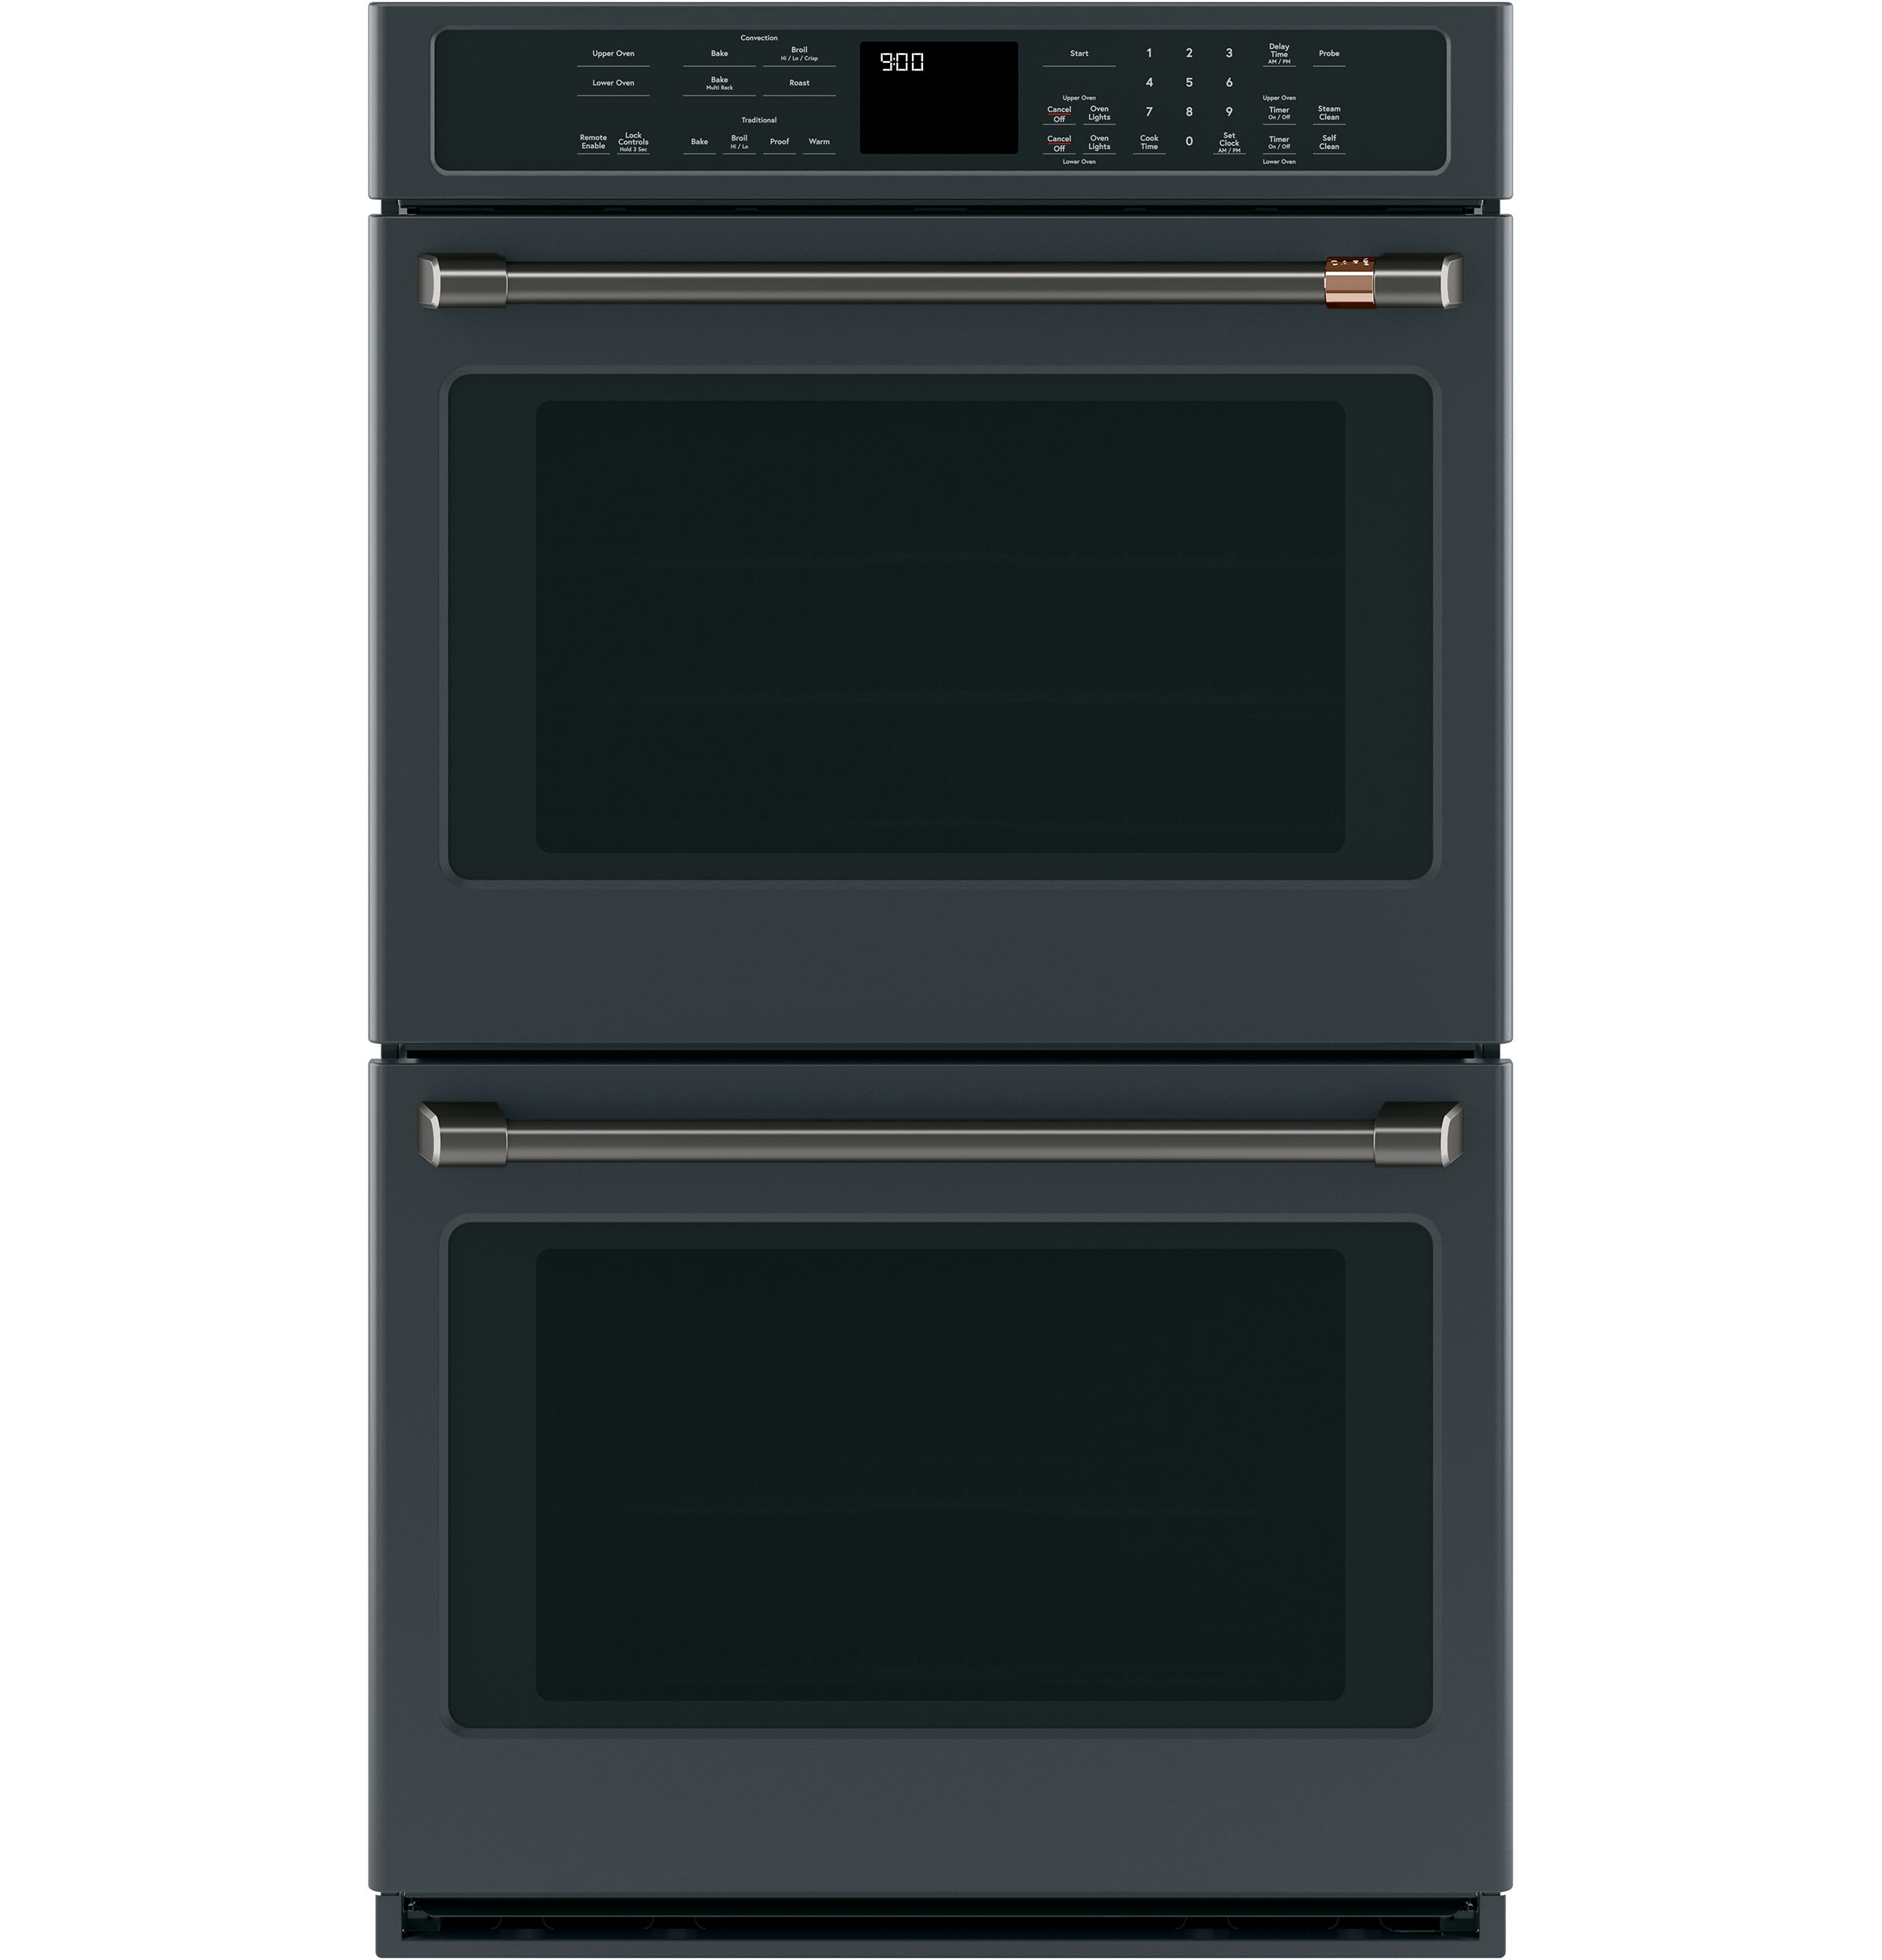 "Cafe 2 - 30"" Double Wall Oven Handles - Brushed Black"